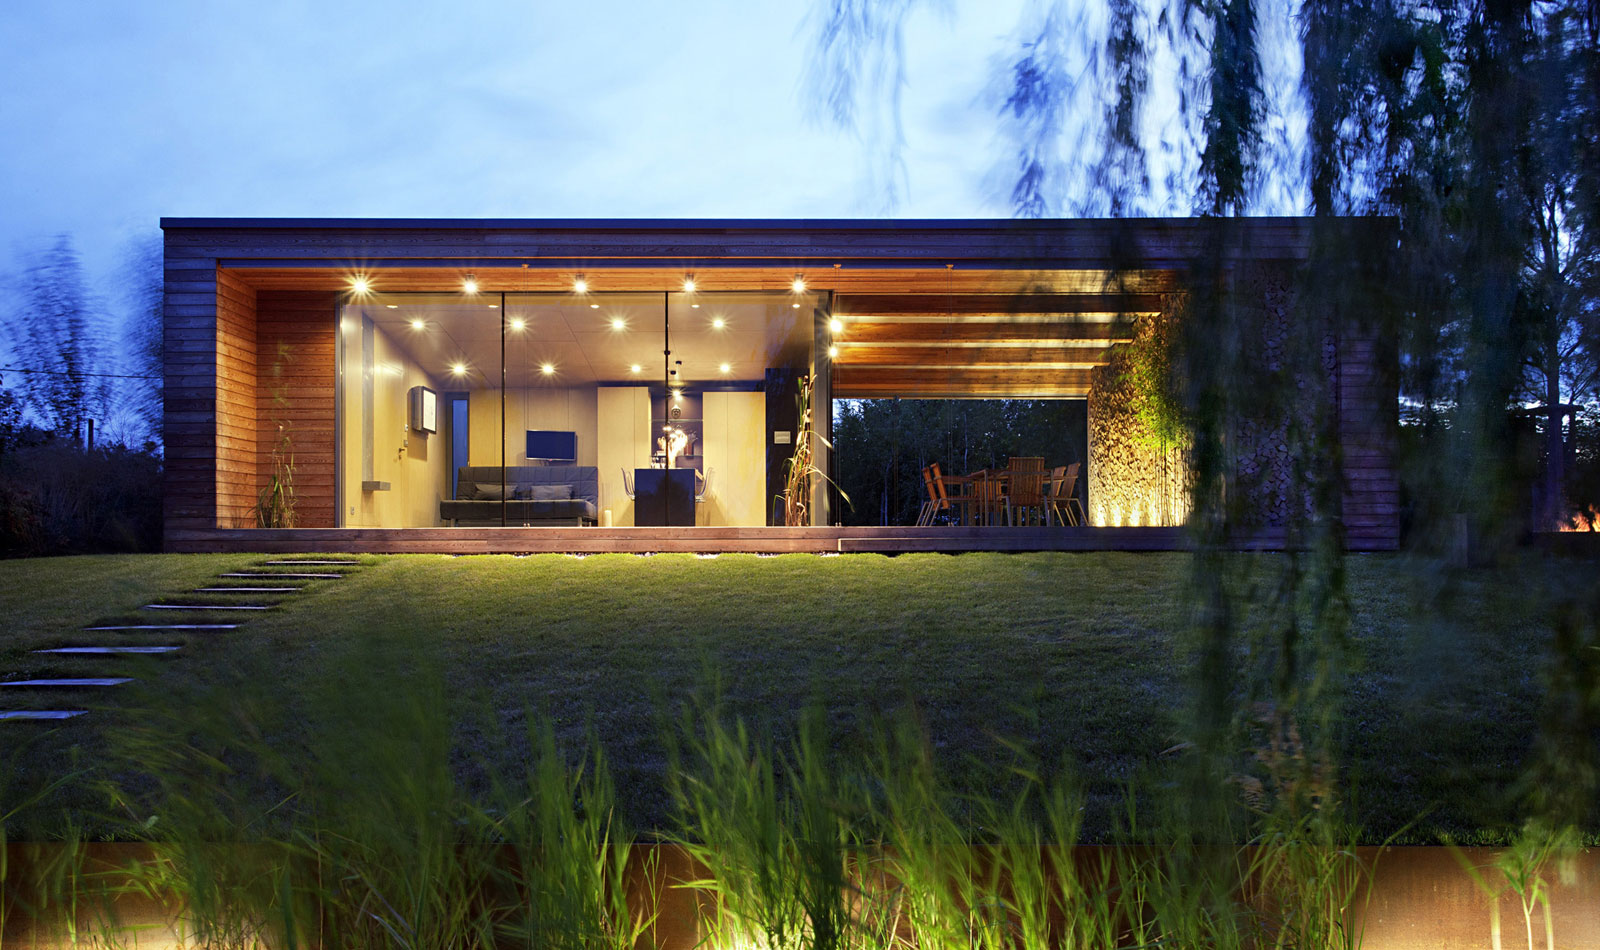 Holiday Cottage near the Lake-Shore by Tóth Project Architect Office-14